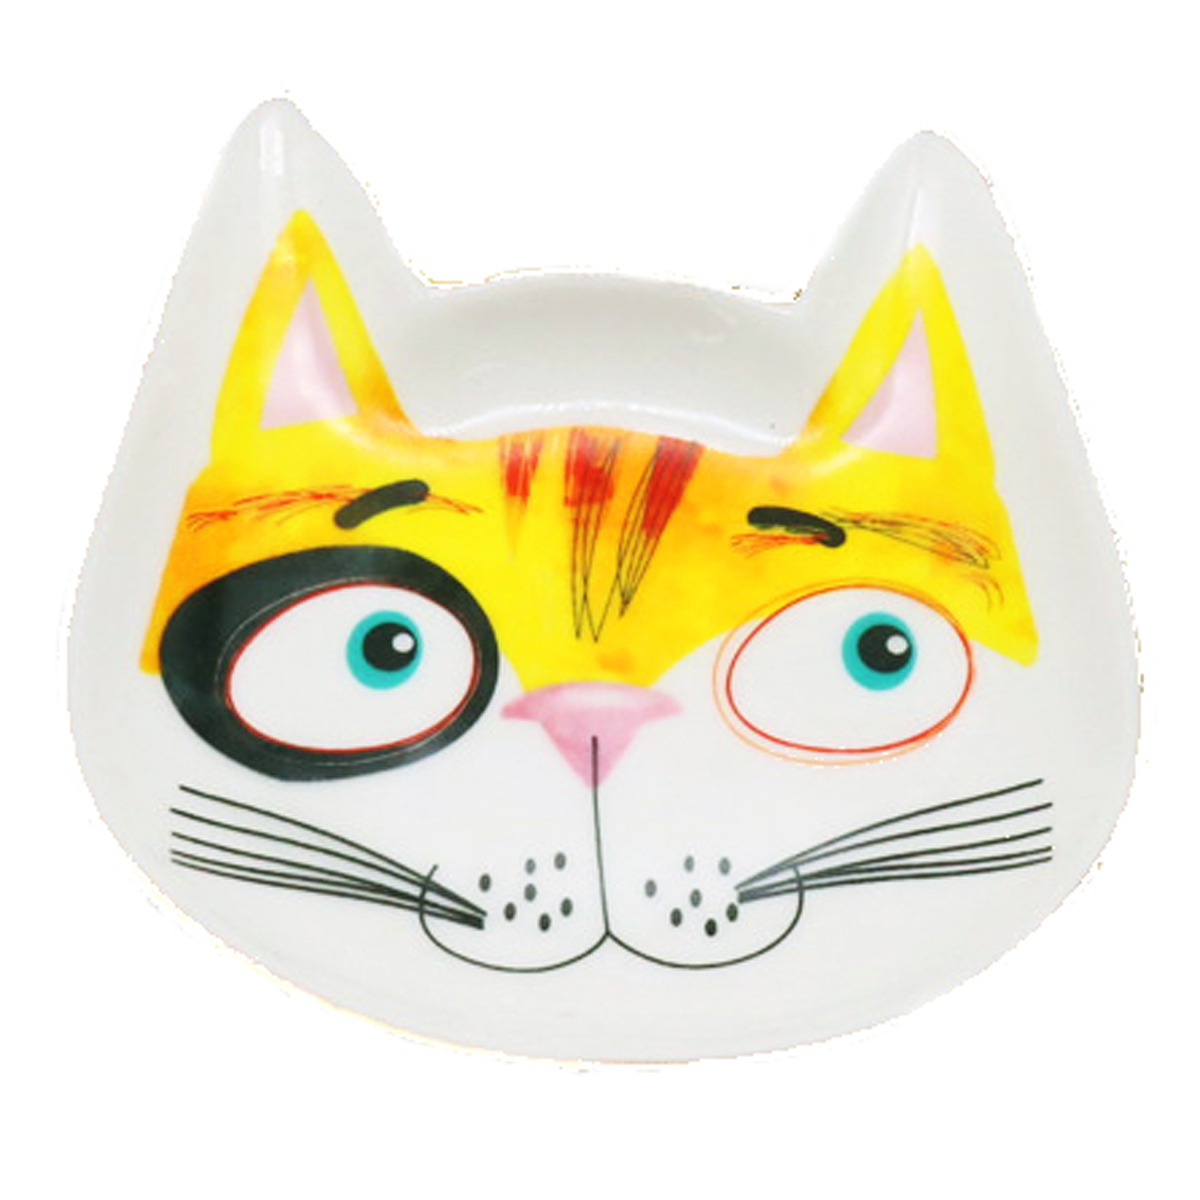 Coupelle vide poches céramique \'Chats\' blanc multicolore - 12x10x2 cm - [R0489]